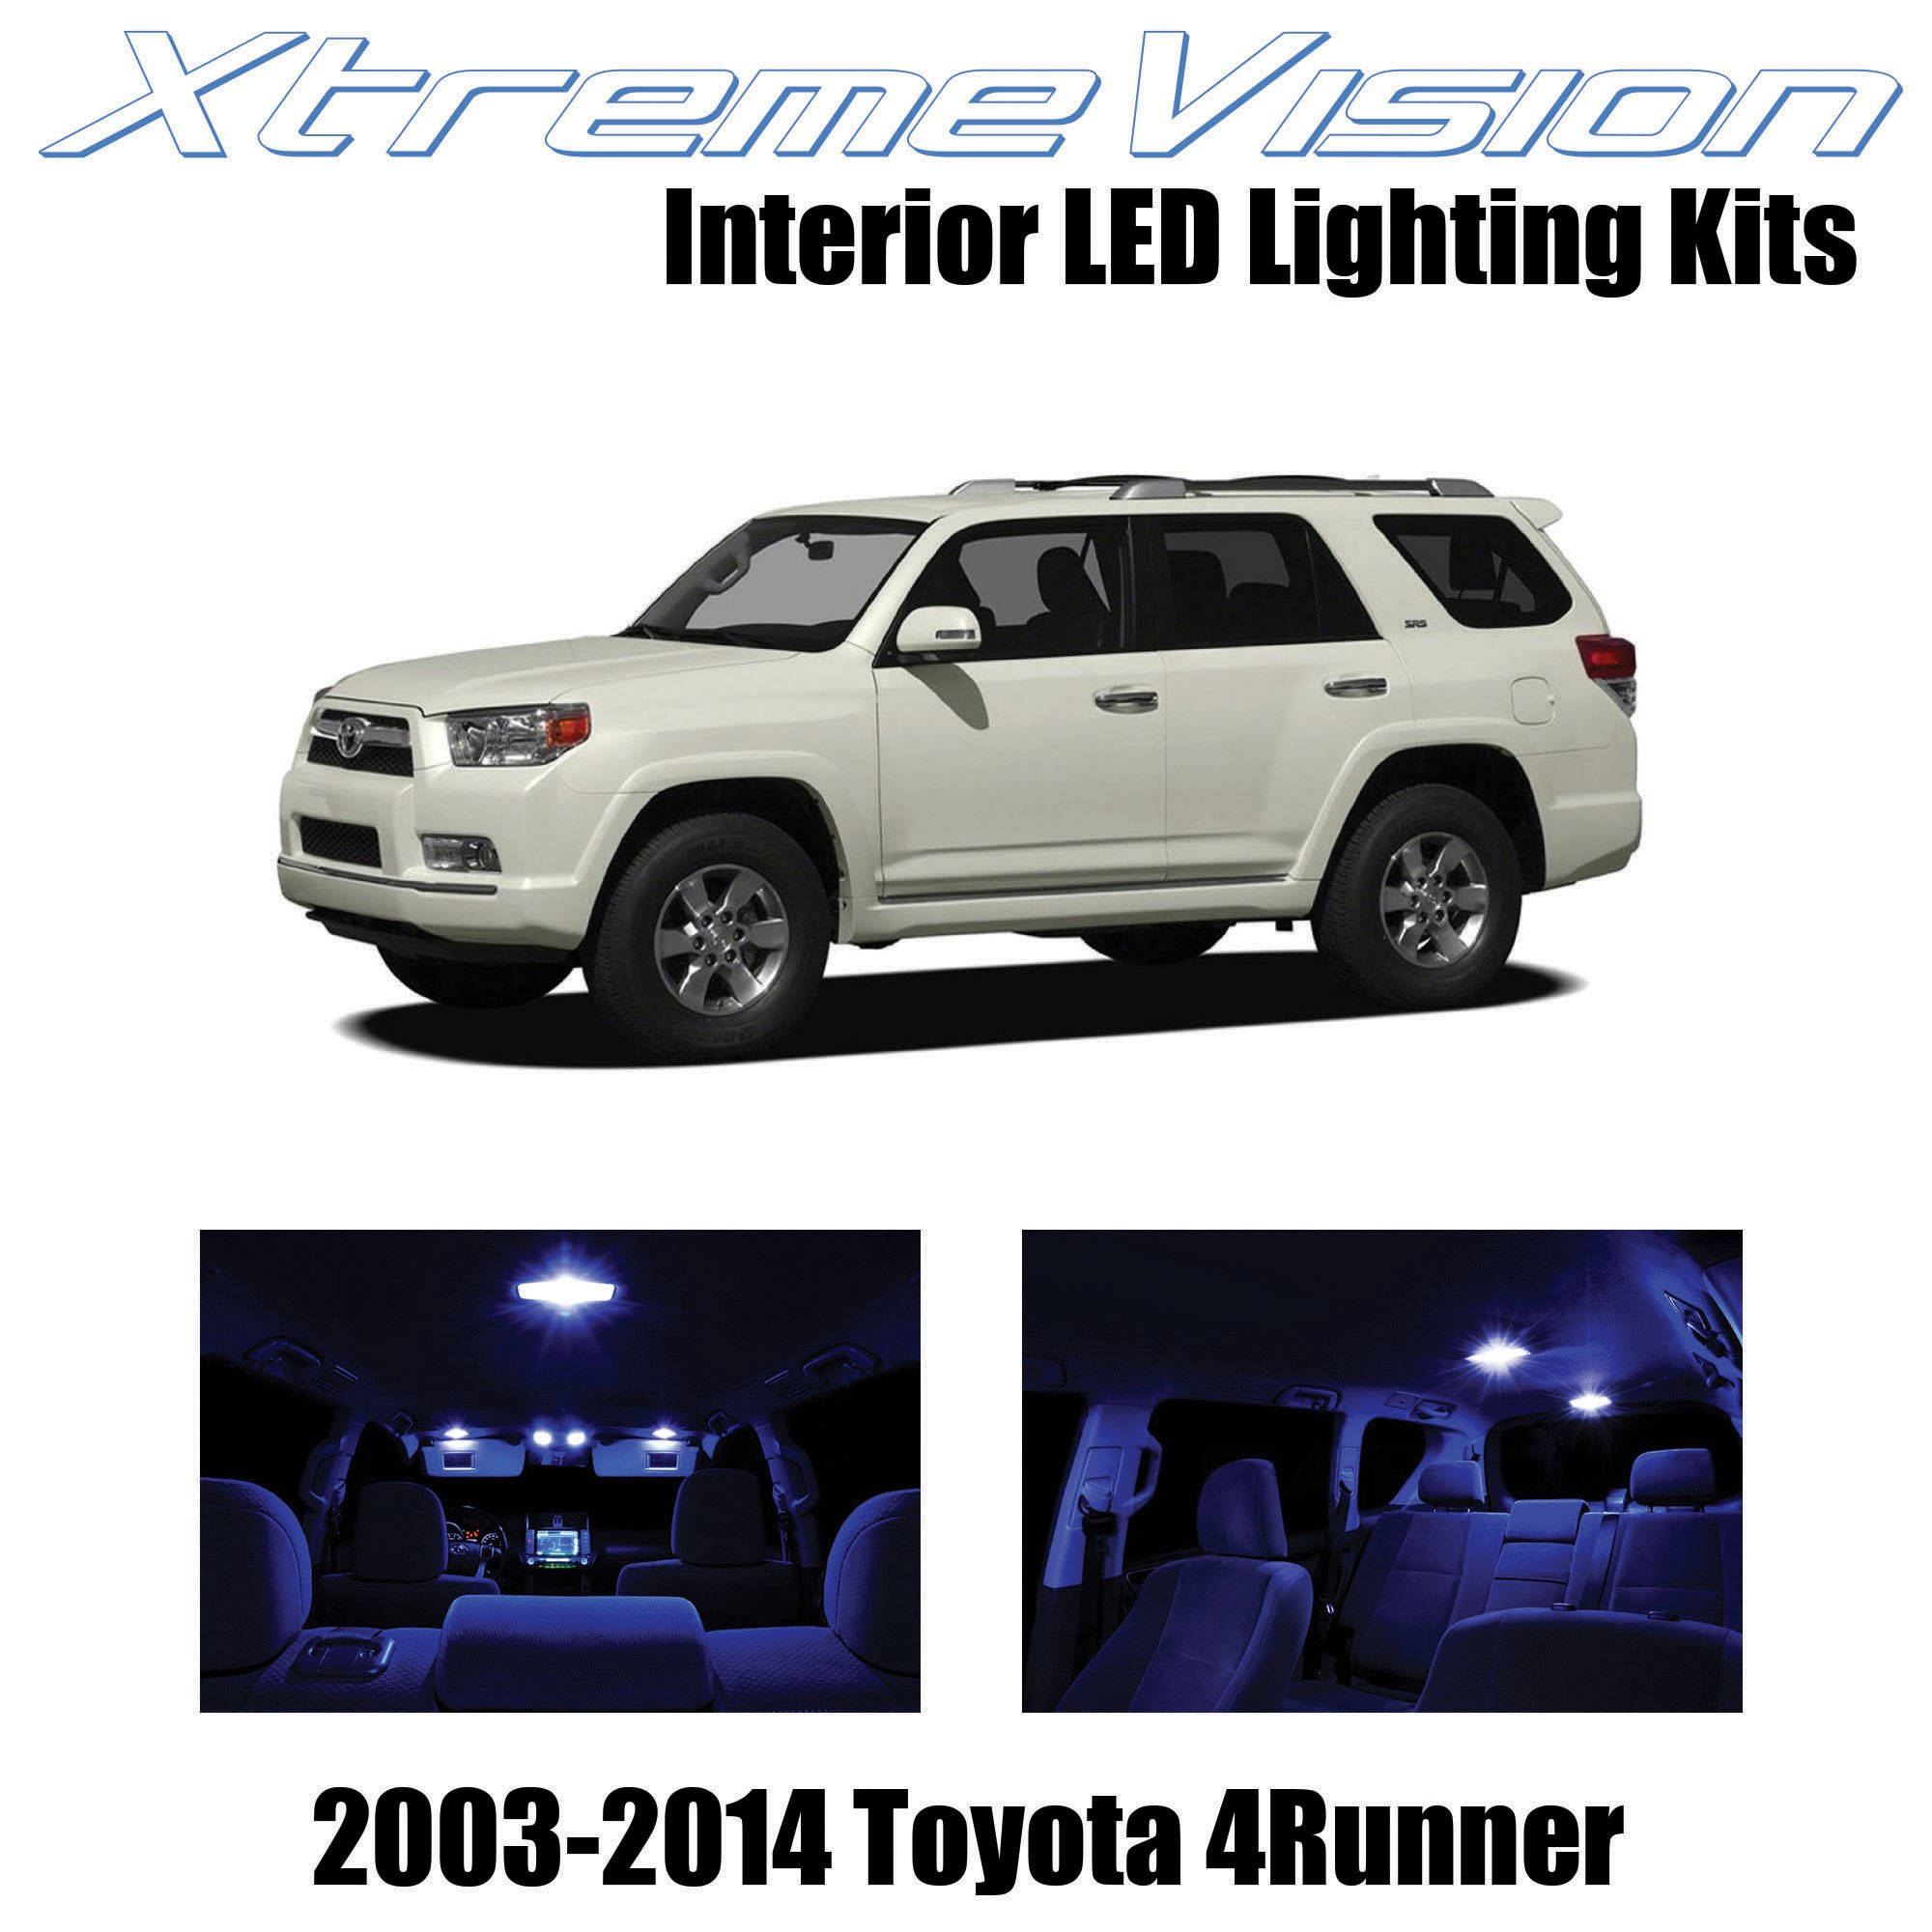 XtremeVision Interior LED for Toyota 4Runner 2003-2014 (12 Pieces) Blue Interior LED Kit + Installation Tool